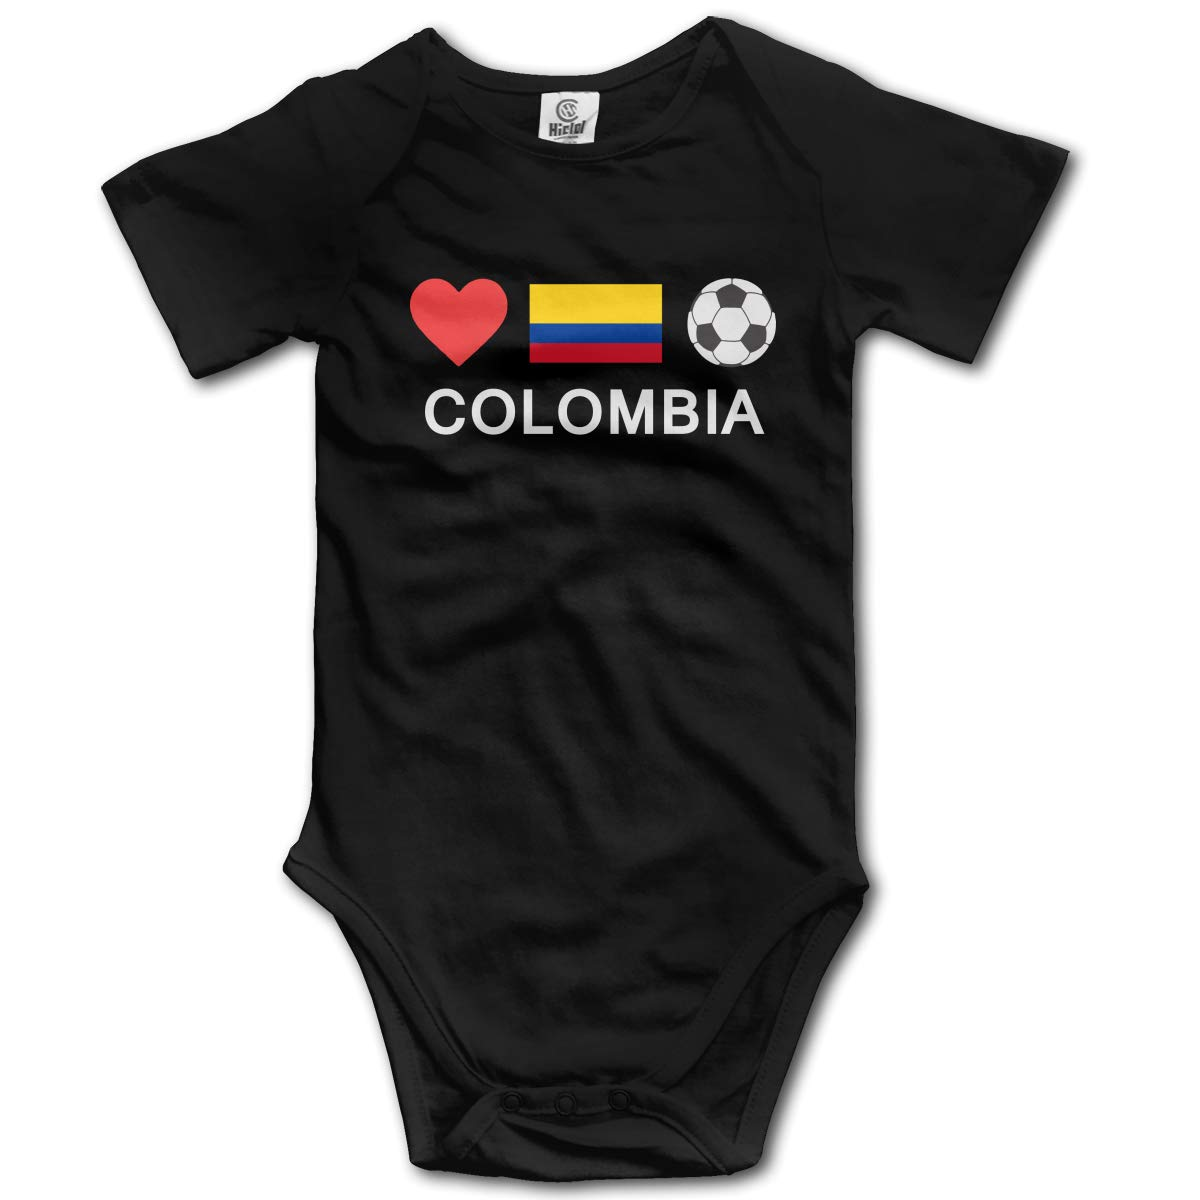 J122 Colombia Football Suit 6-24 Months Baby Short Sleeve Baby Clothes Climbing Clothes